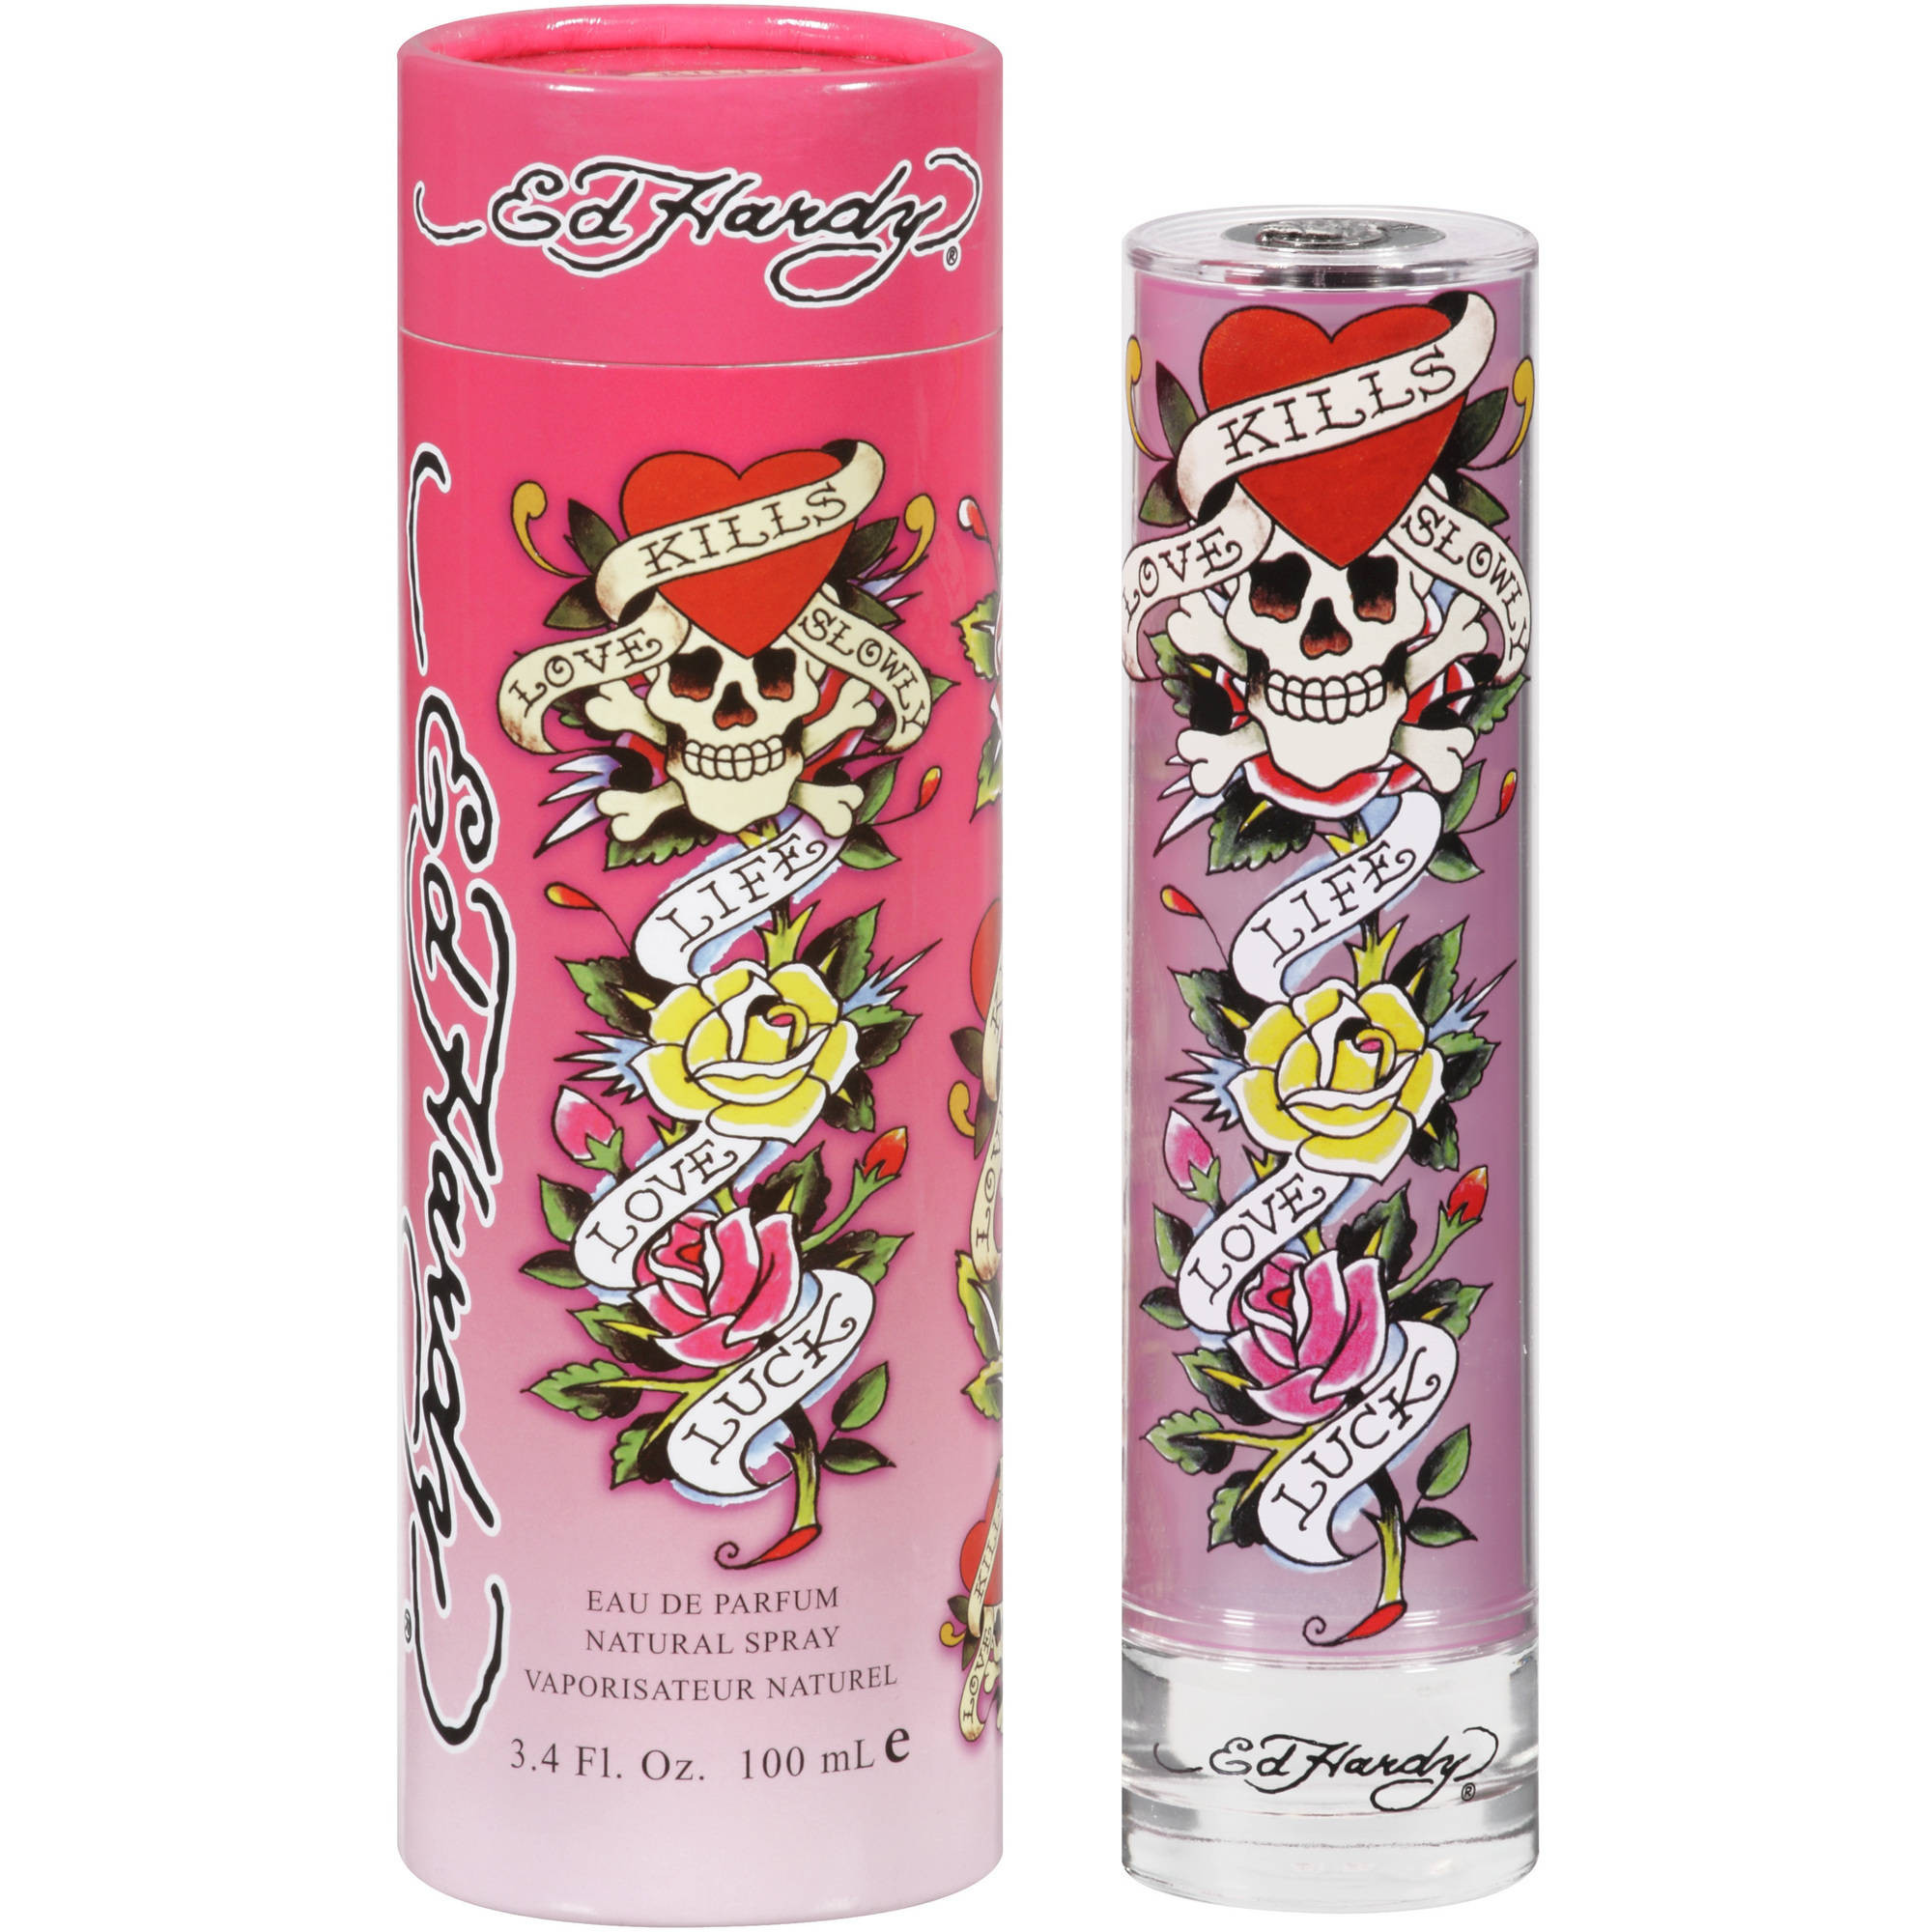 Ed Hardy Eau de Parfum Spray for Women, 3.4 fl oz